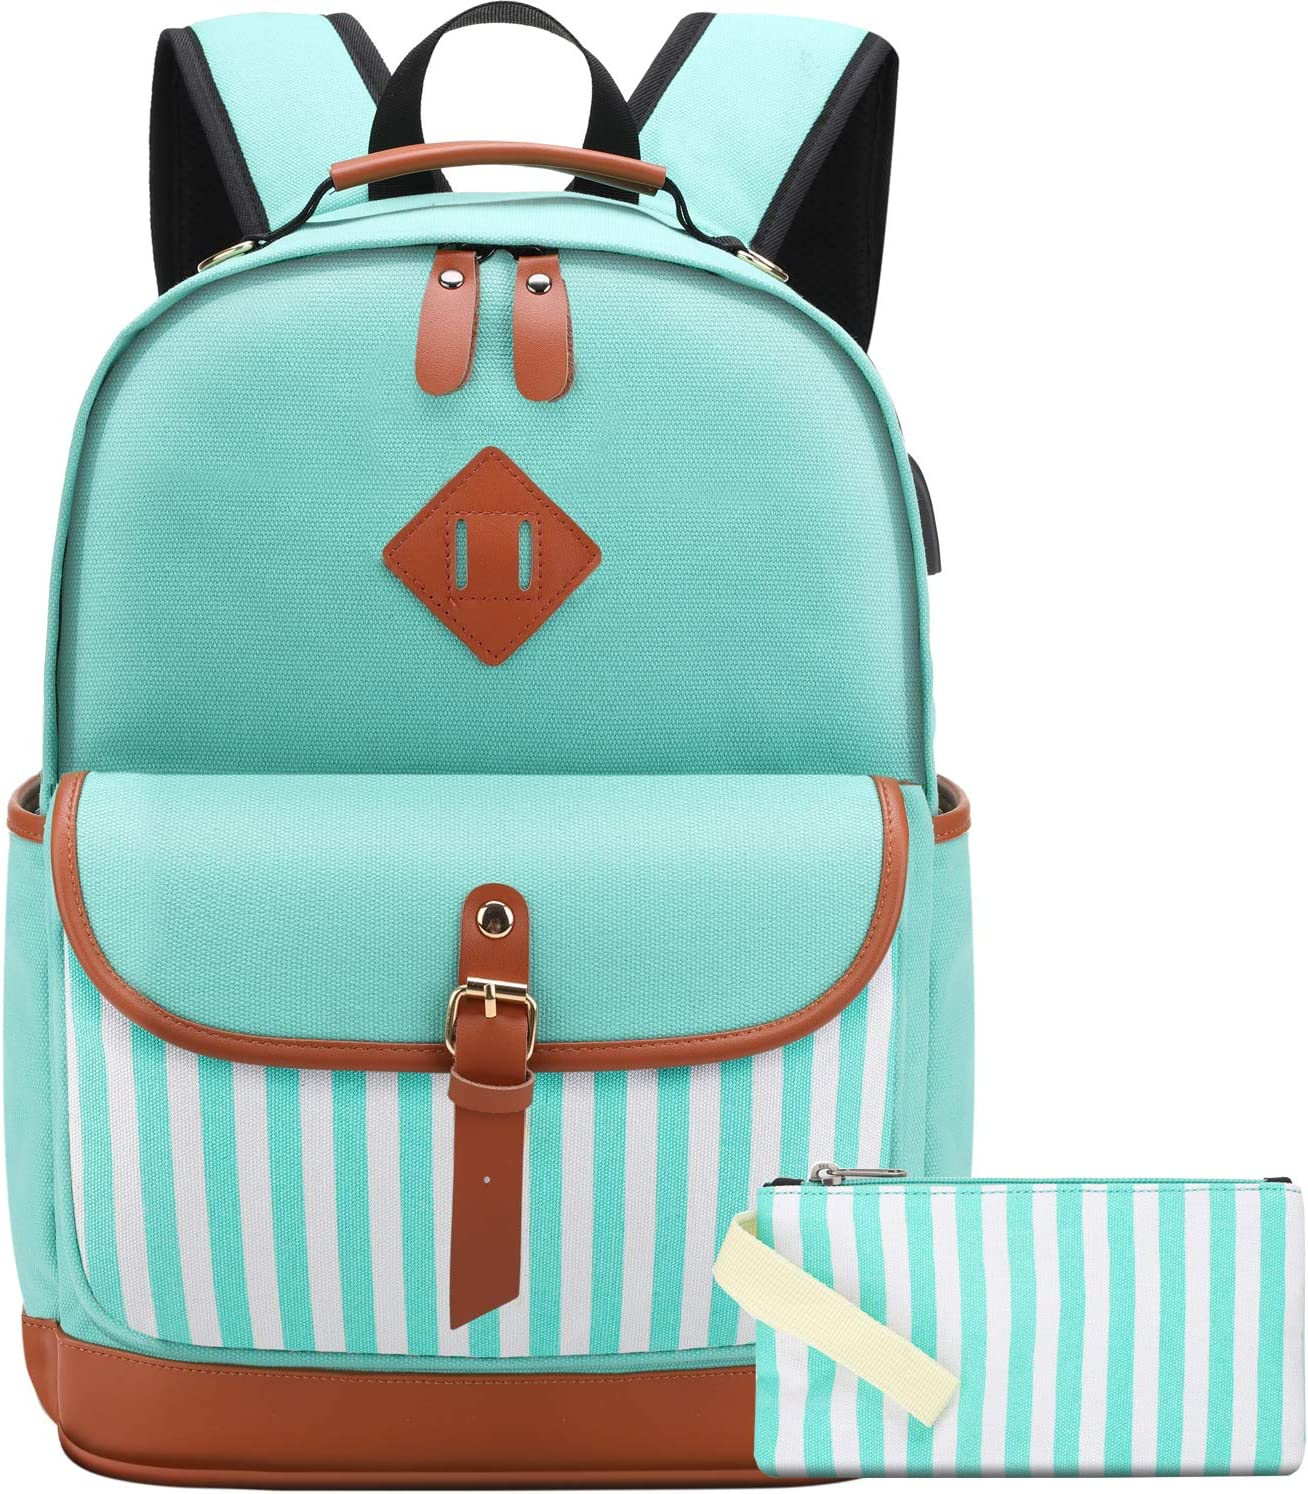 "School Backpack for Girls College Laptop Backpack for Women fit 15.6"" Laptop School Bag With USB Charging Port Green"